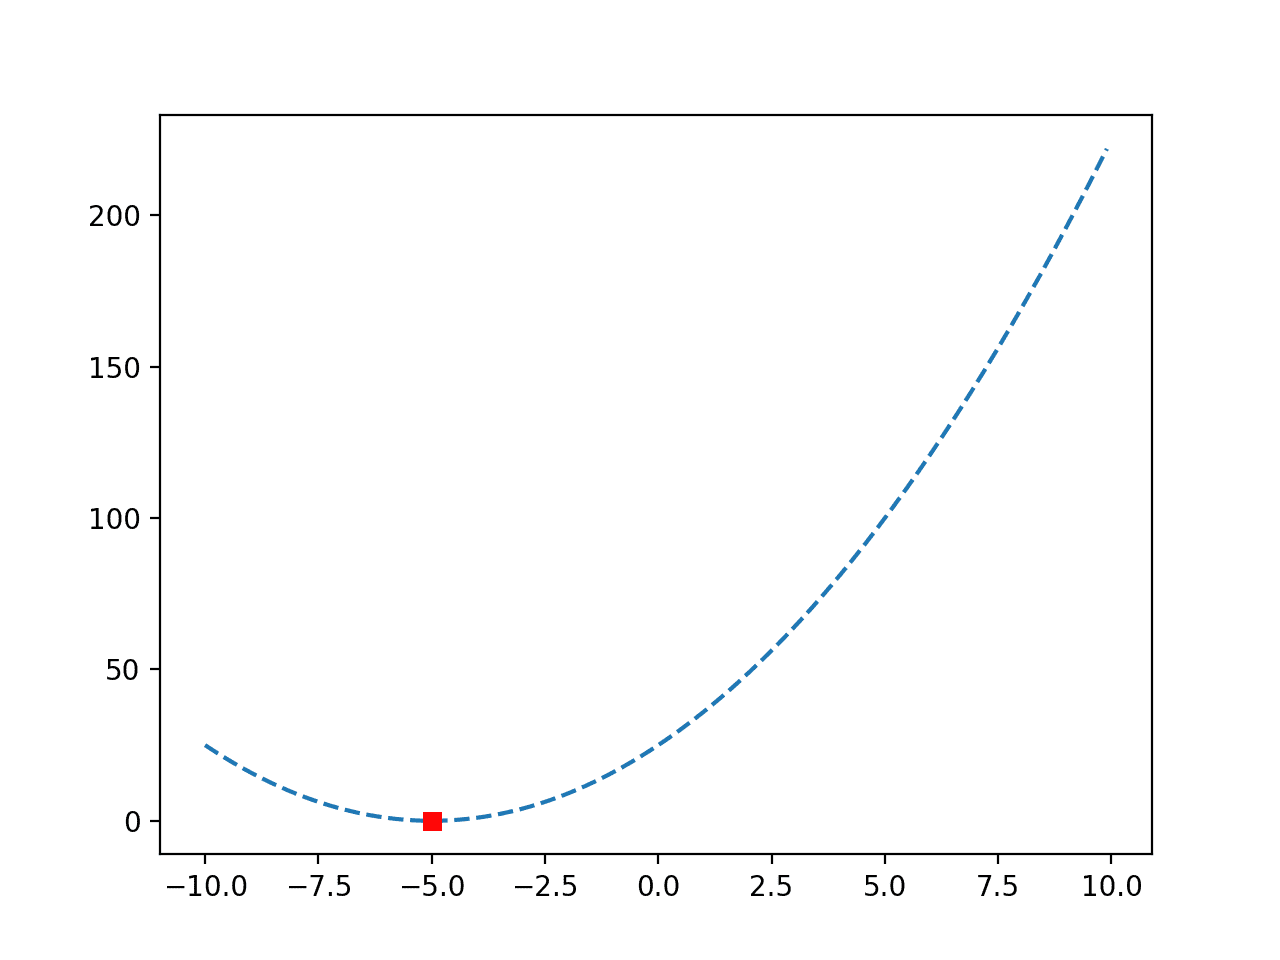 Line Plot of a Convex Objective Function with Optima Marked